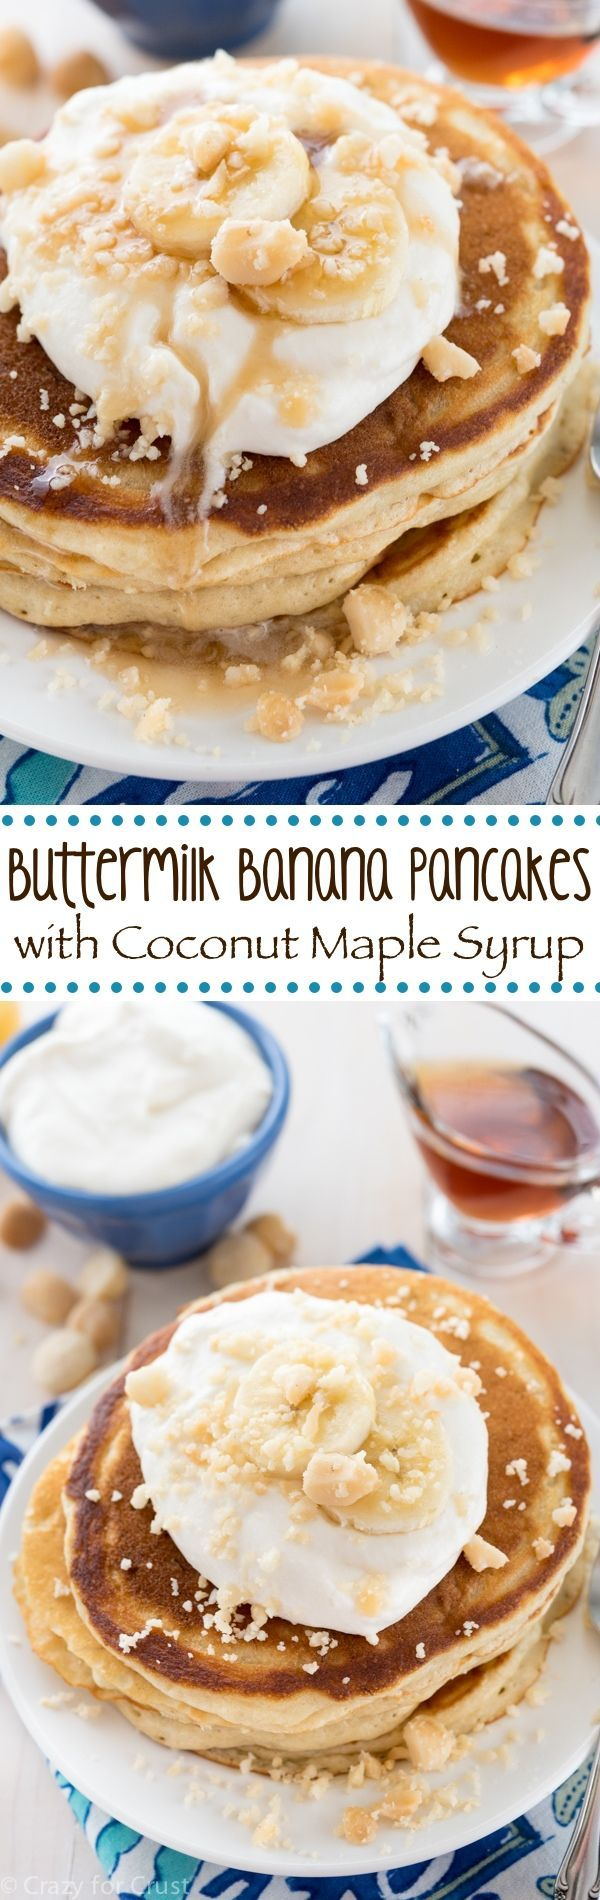 These Buttermilk Banana Pancakes are so good! It's an easy pancake recipe that's yields fluffy pancakes that taste so good with coconut maple syrup.